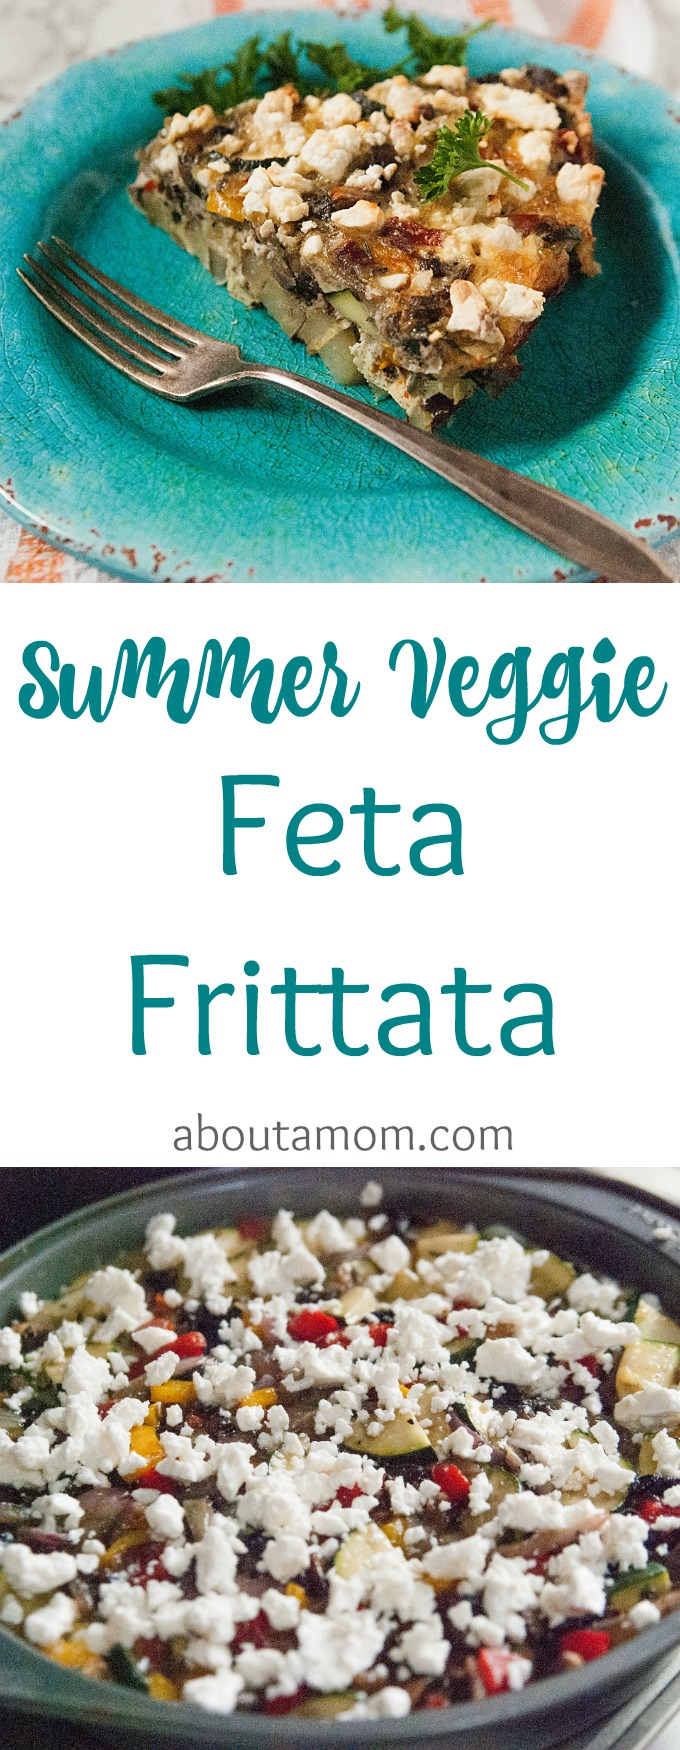 This easy summer vegetable frittata with feta recipe is perfect for breakfast, lunch or dinner. I like to make this in the morning and nosh on it all day long.